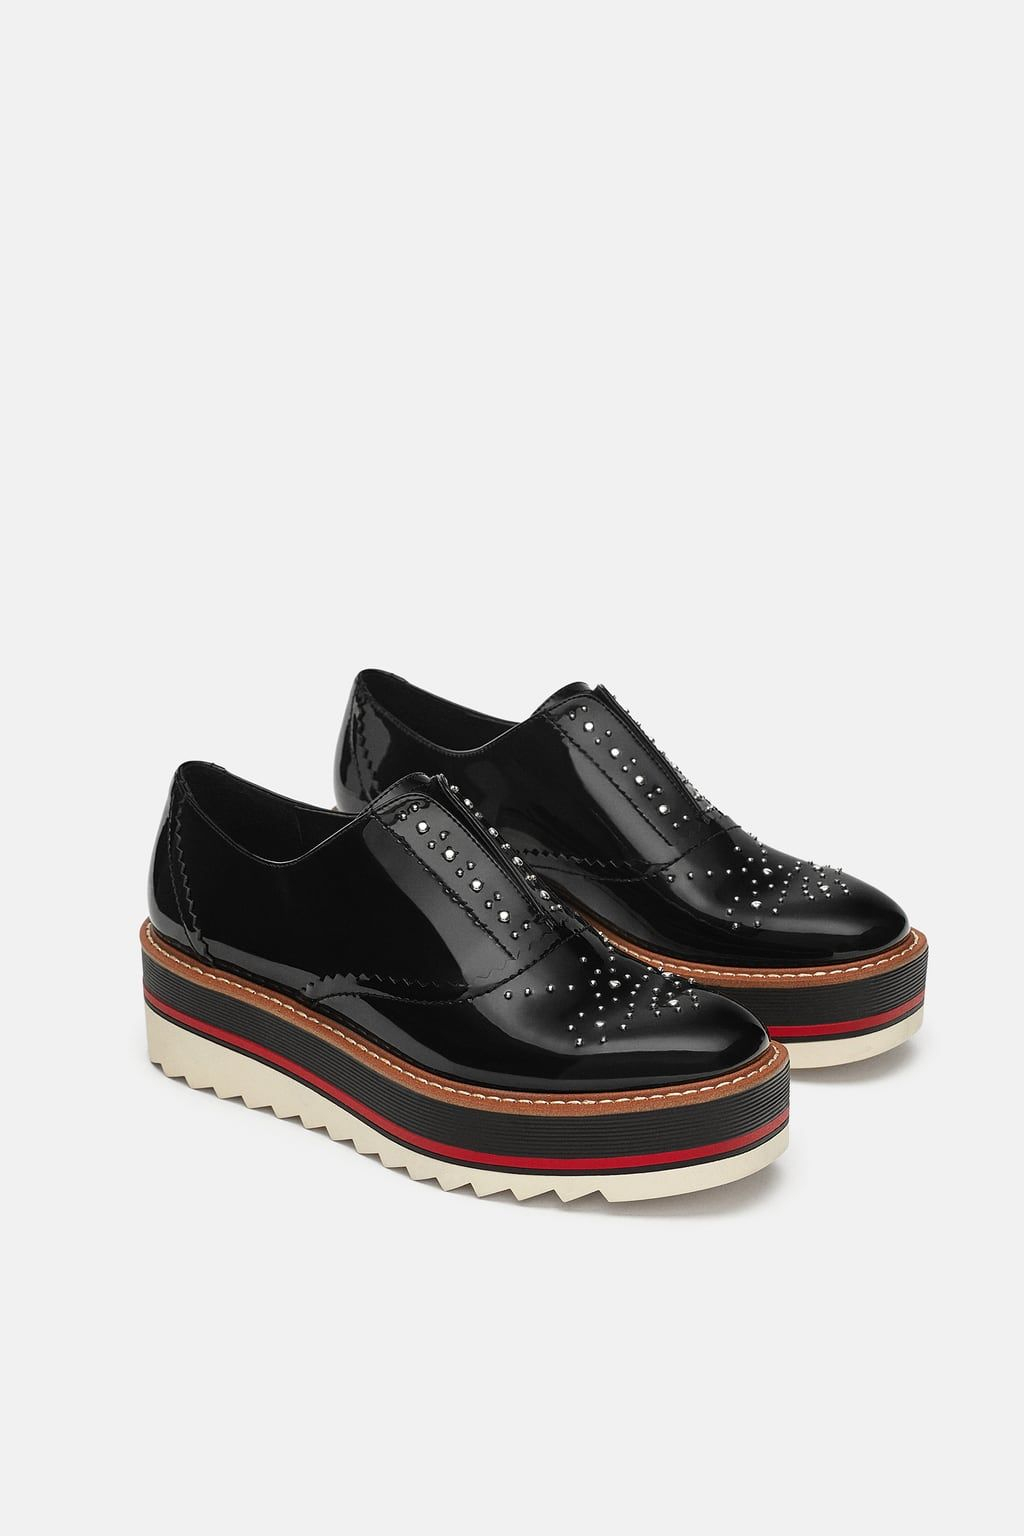 8c6265b311a Image 1 of STUDDED FLATFORM OXFORDS from Zara | Editor Wish List in ...